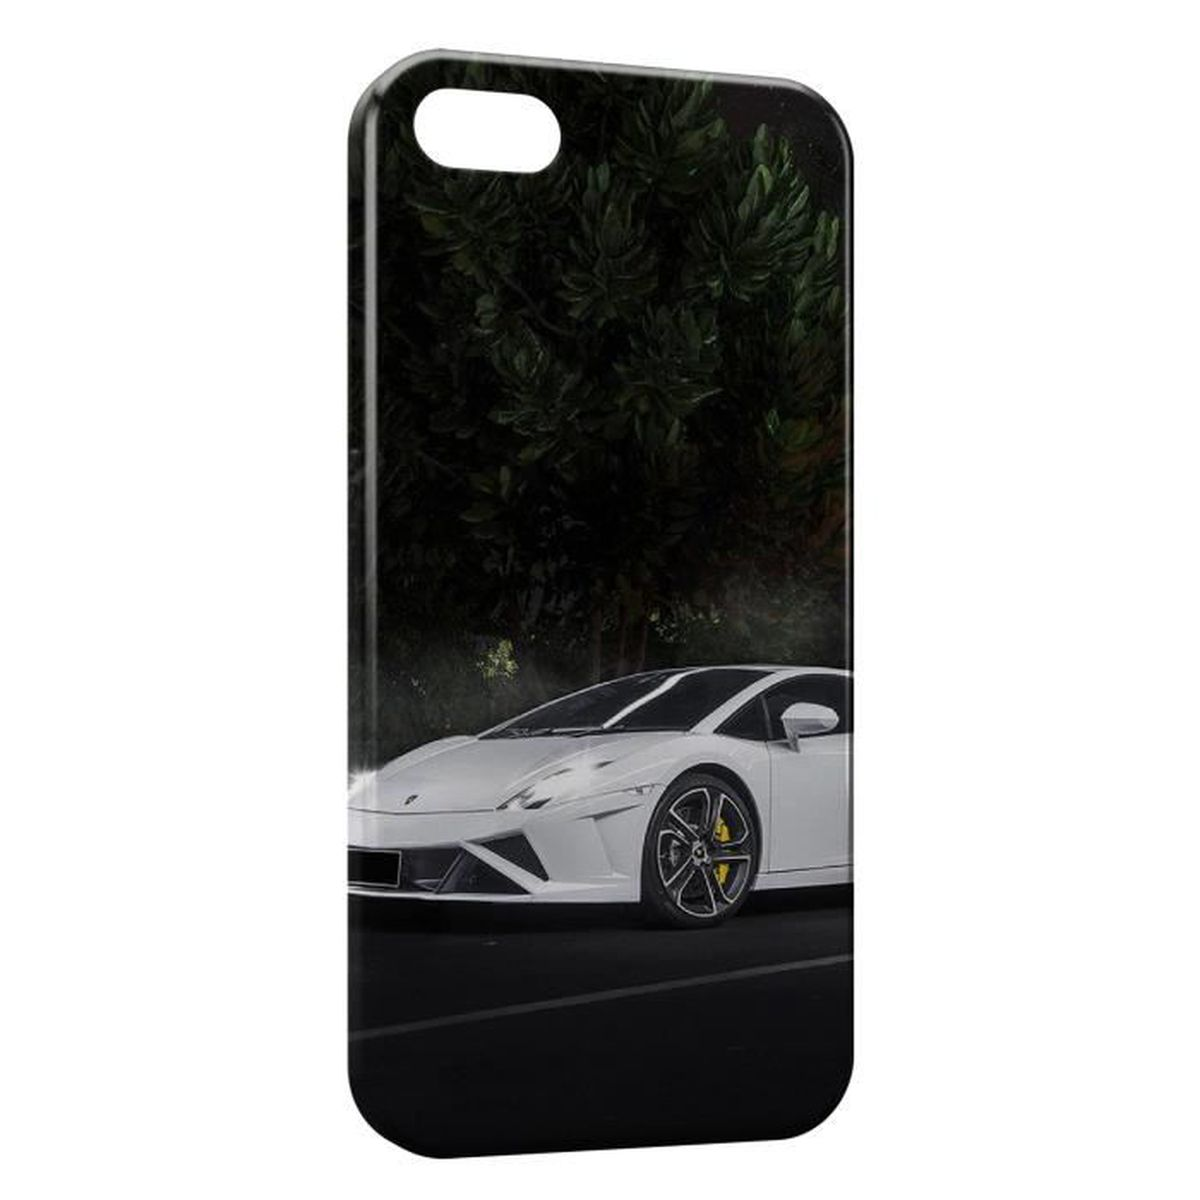 coque iphone 6 lamborghini lp560 blanche voiture achat coque bumper pas cher avis et. Black Bedroom Furniture Sets. Home Design Ideas